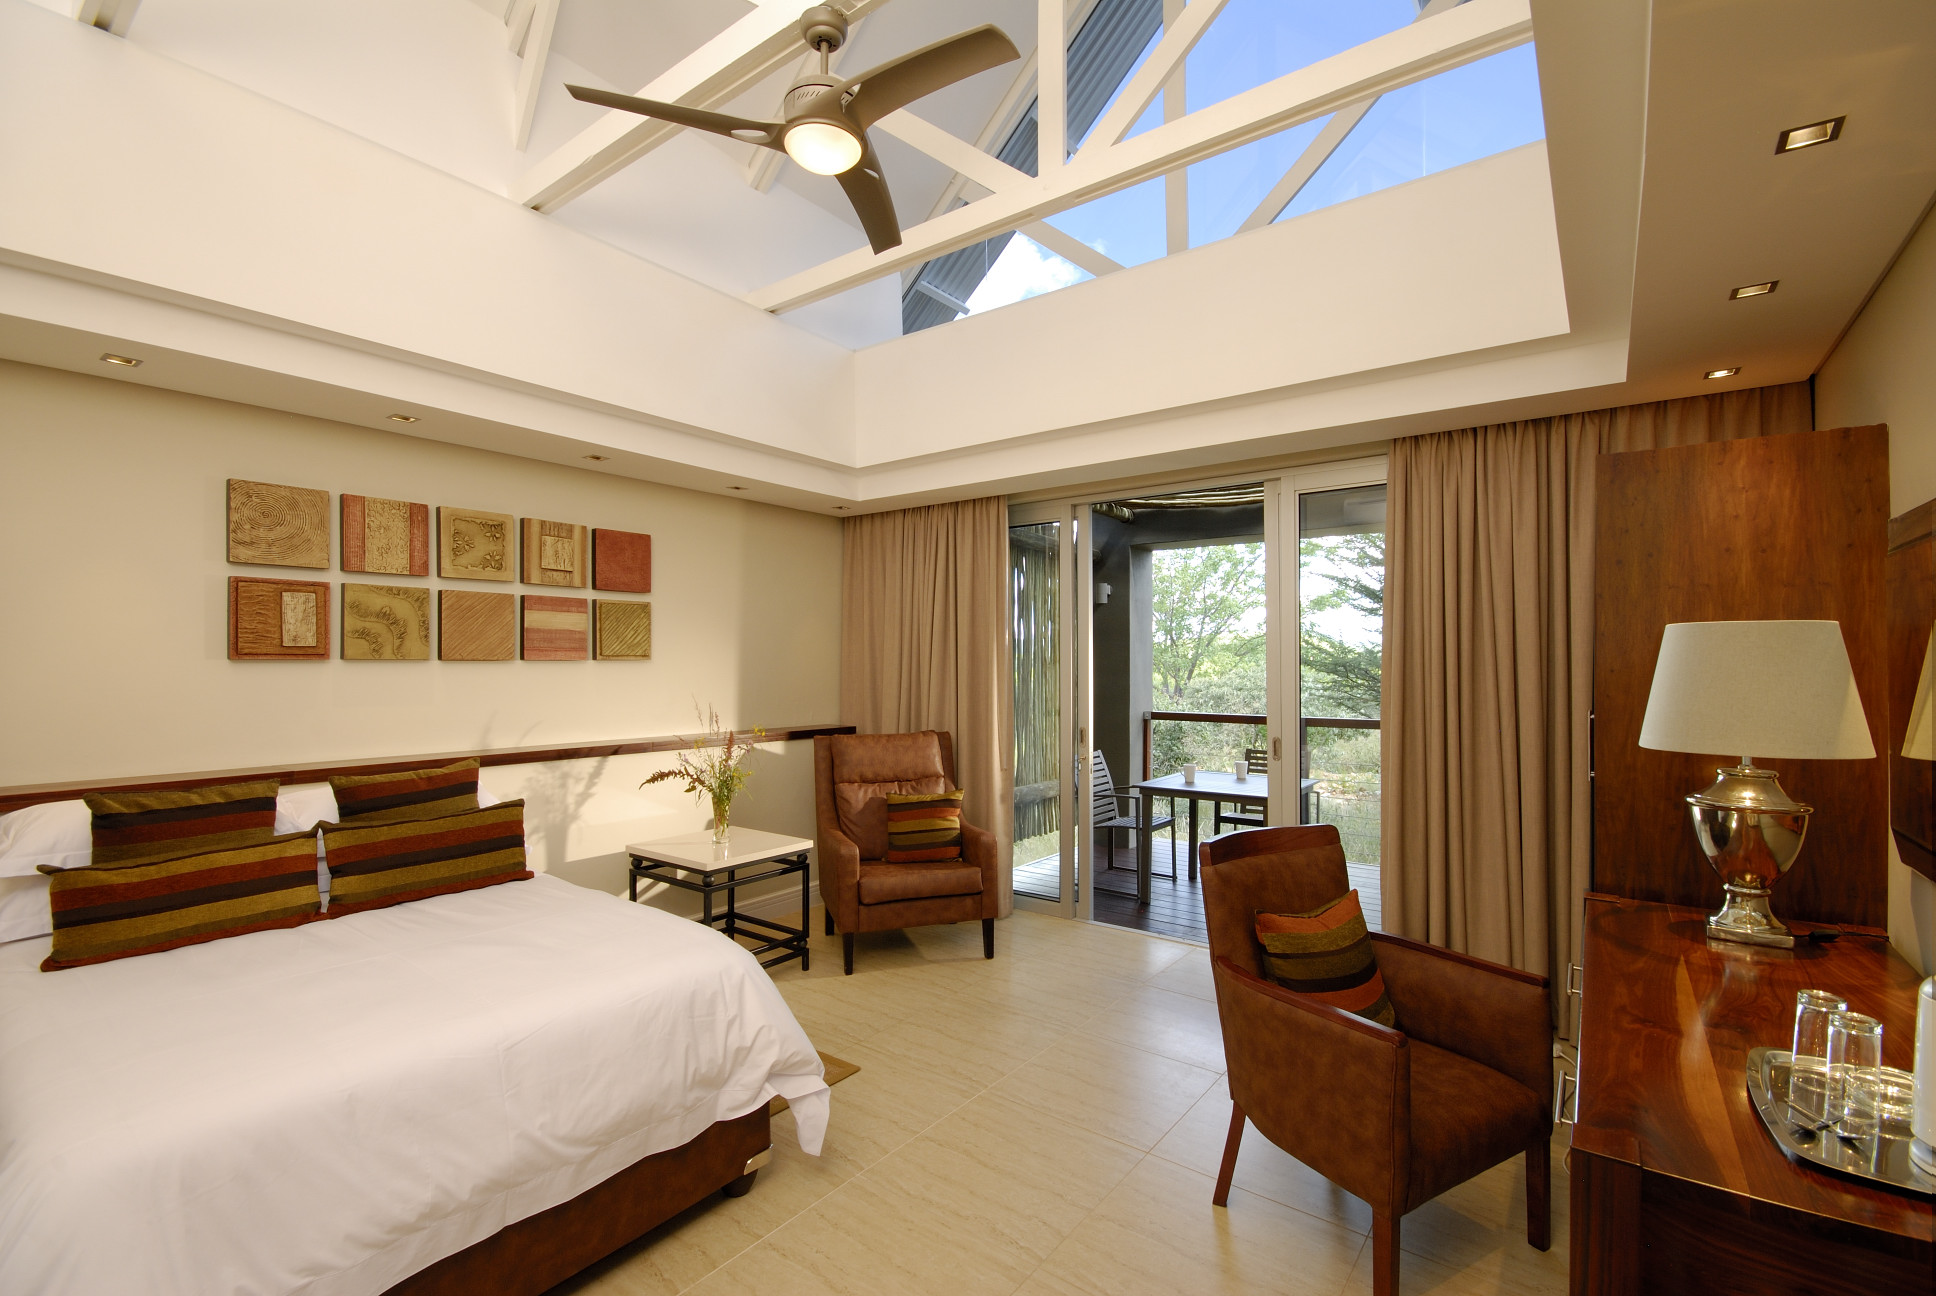 Suite (Includes 1 room with 1 double bed with kitchen and lounge)